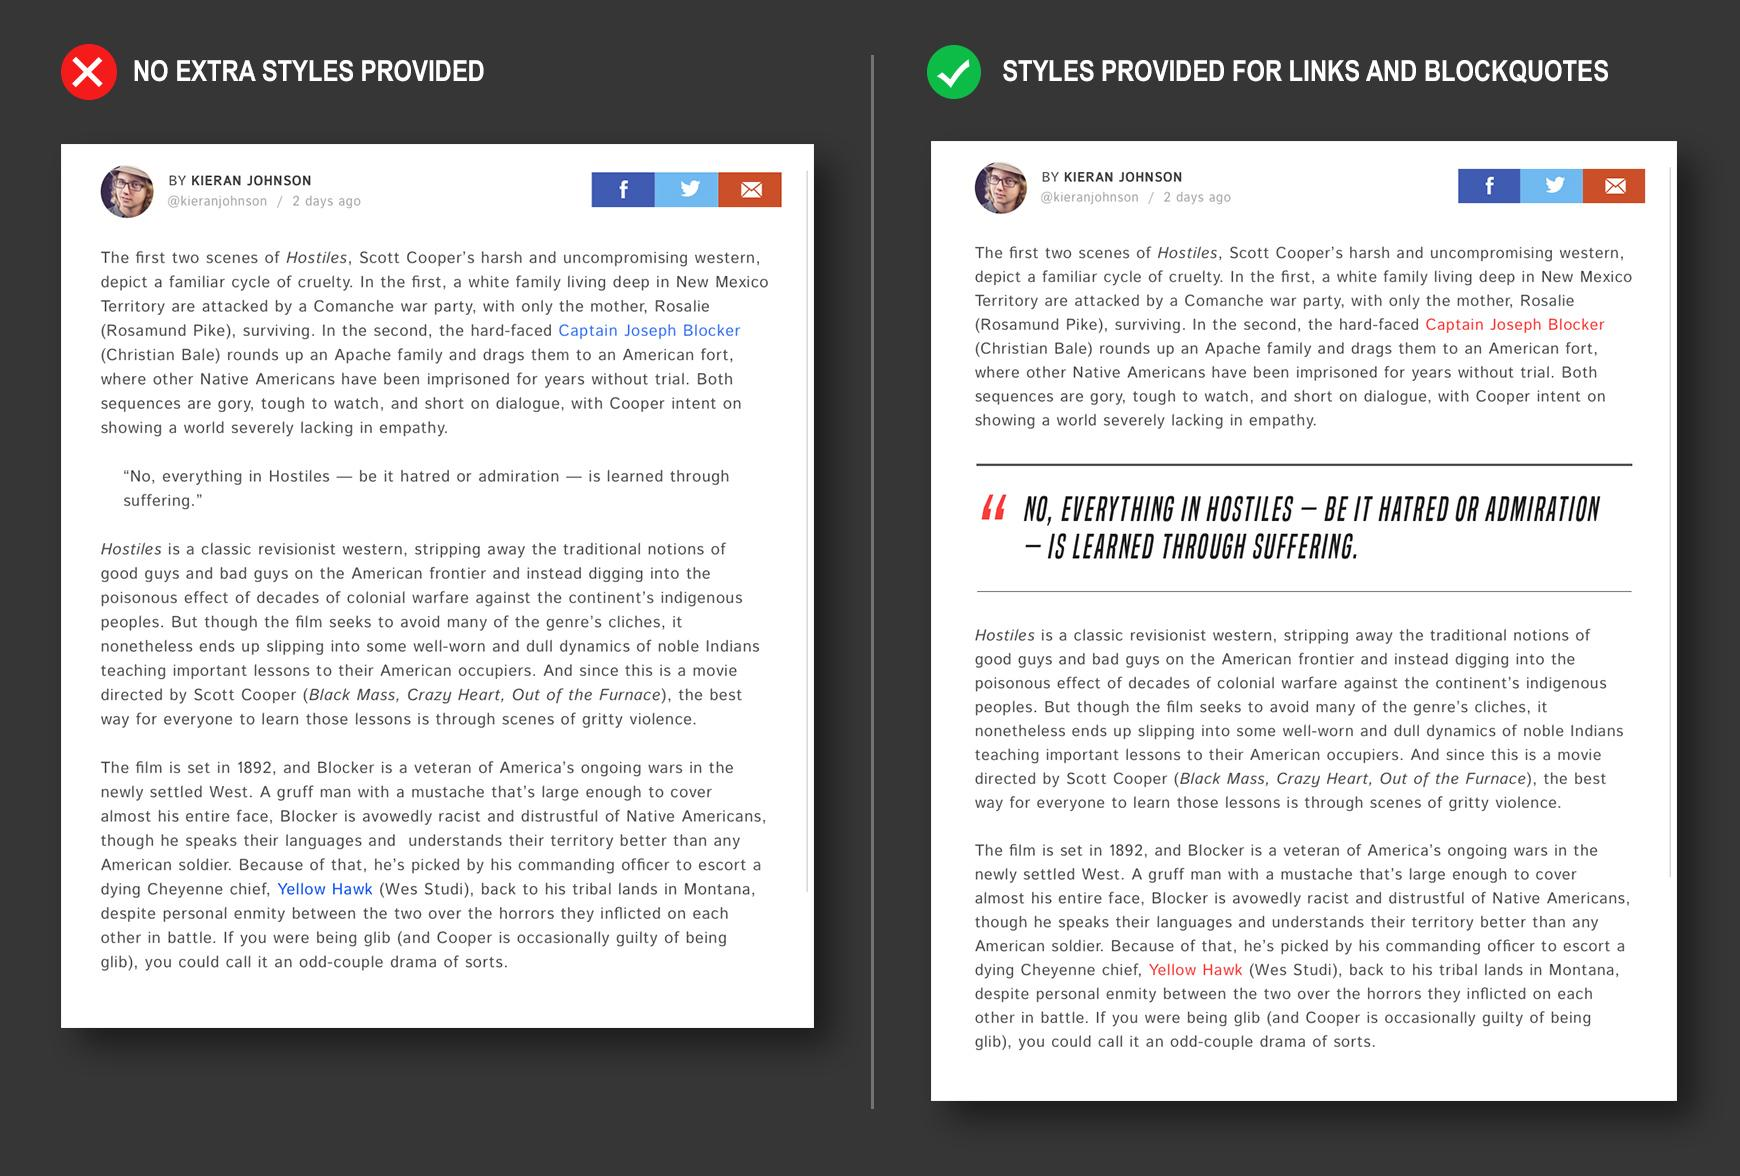 Post page comparison - providing extra styles